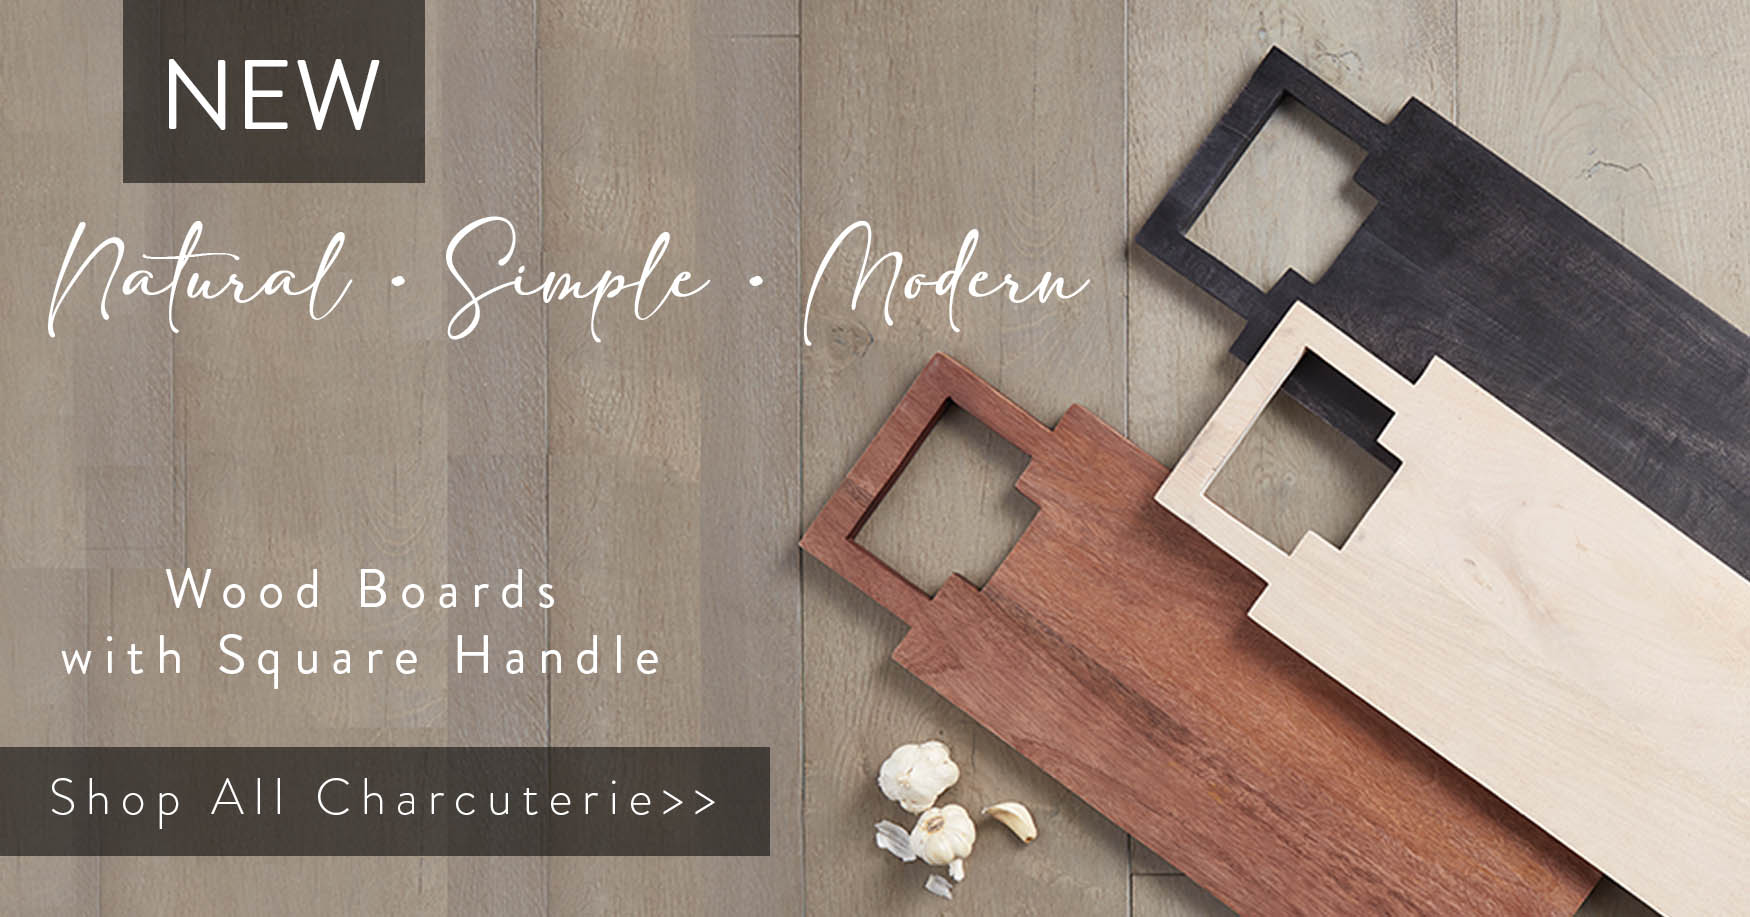 New Natural. Simple. Modern. Wood Boards with Square Handle. Shop all Charcuterie!